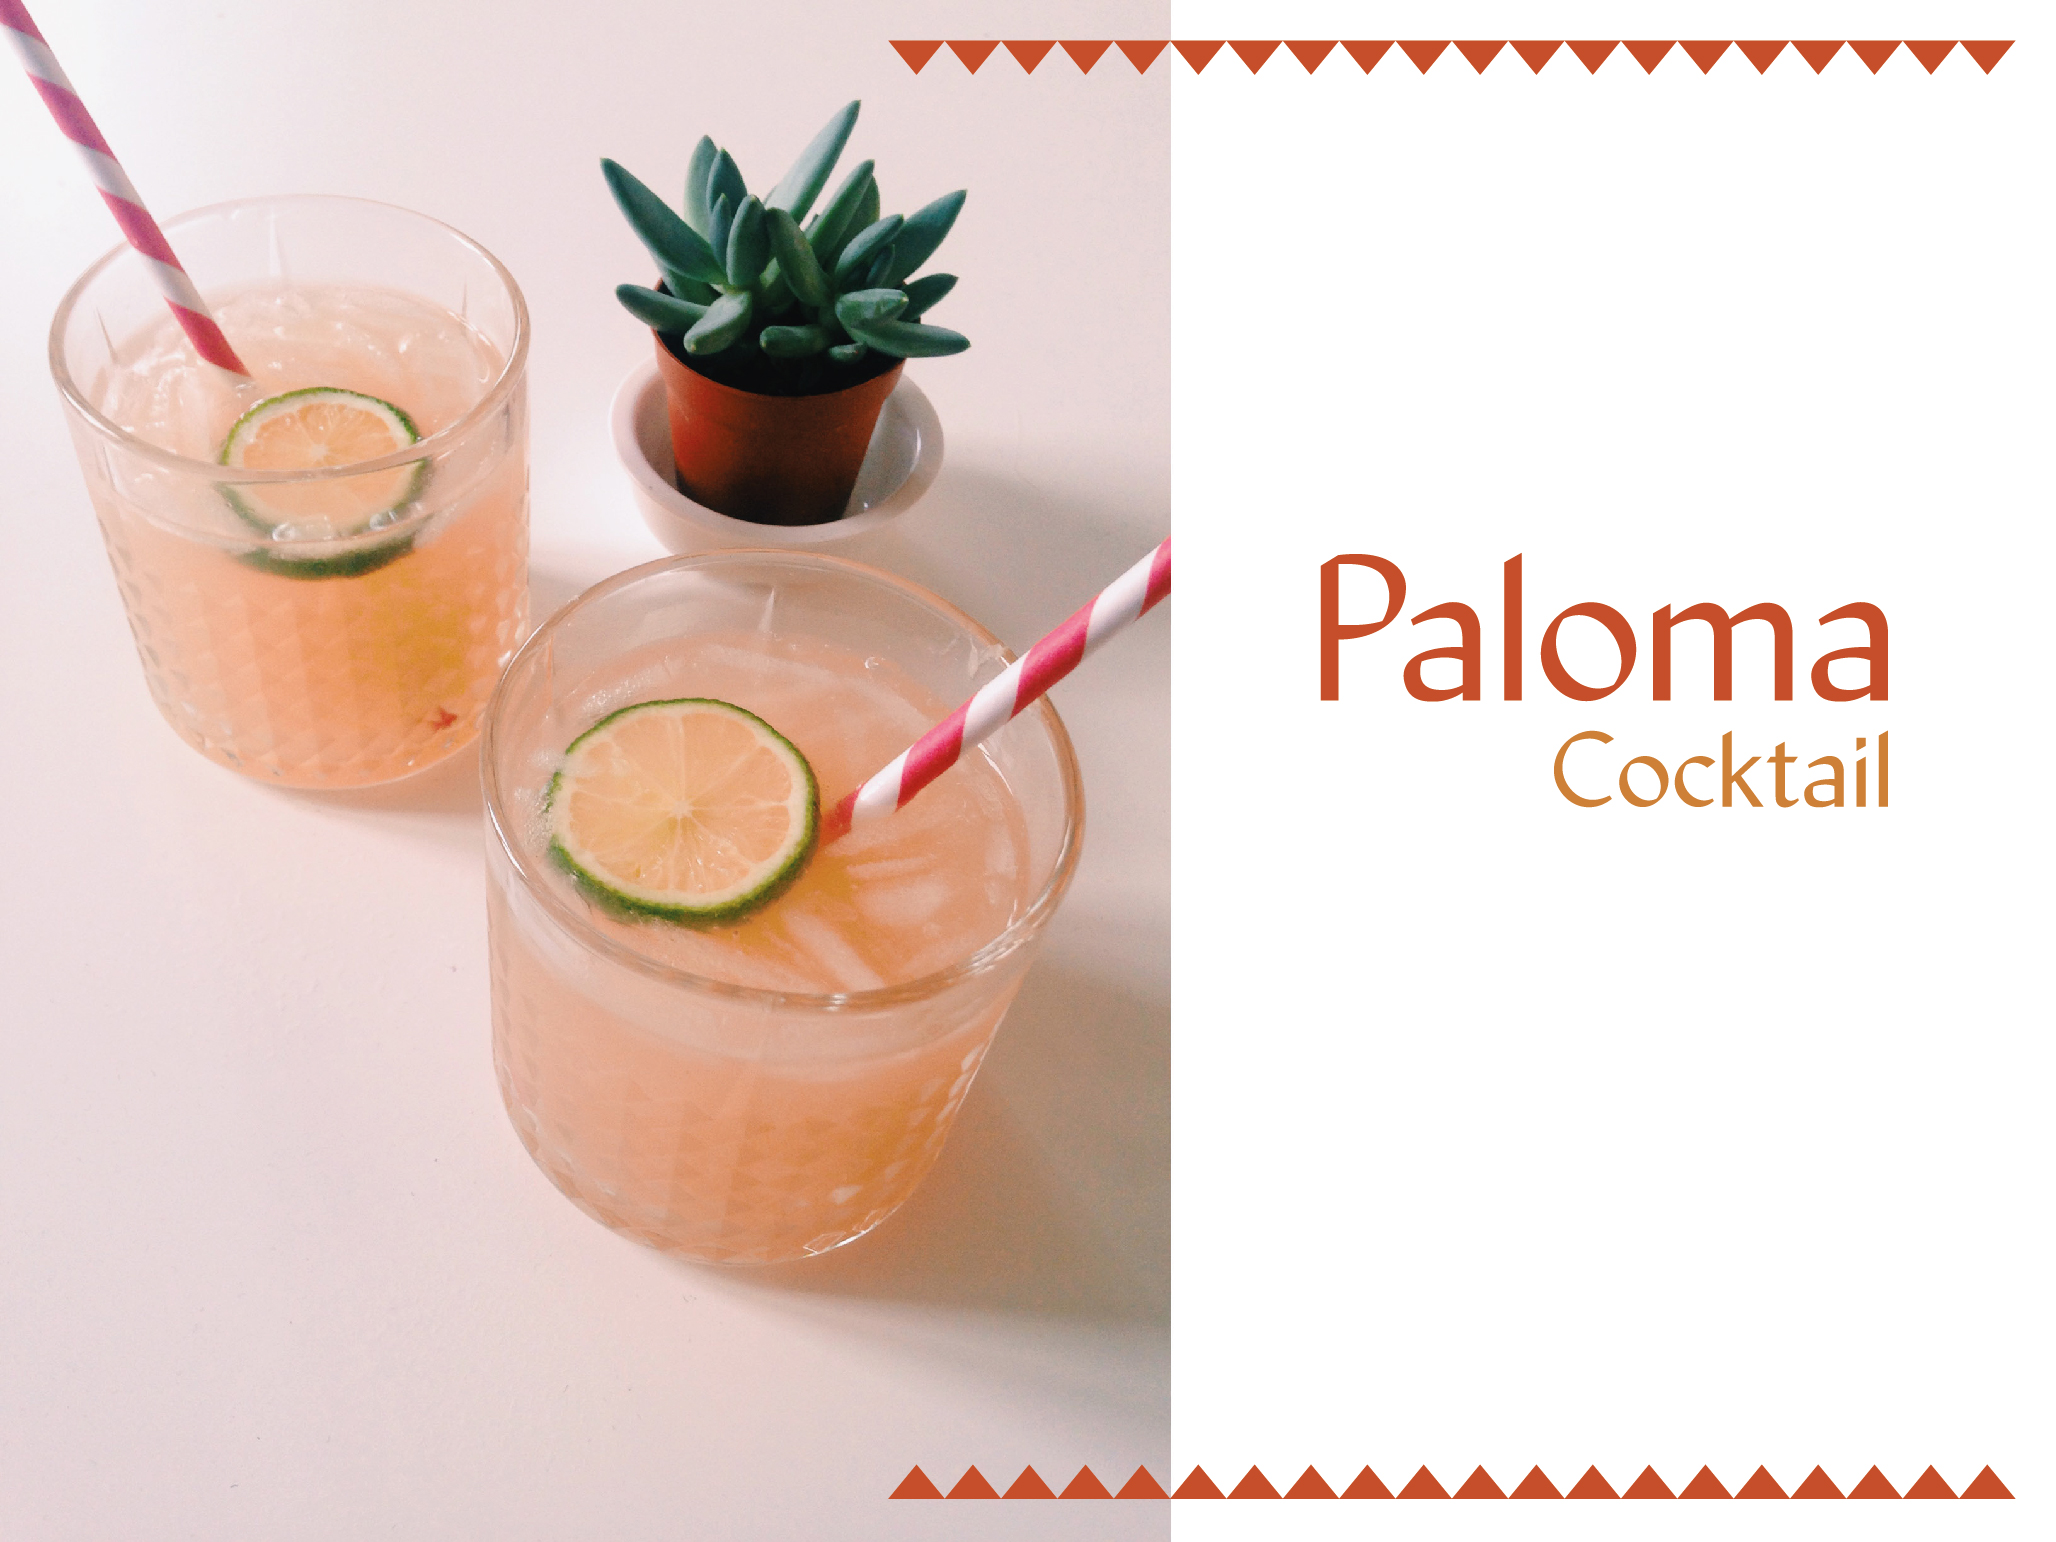 Paloma Cocktail {Tequila+pamplemousse} / The Flying Flour